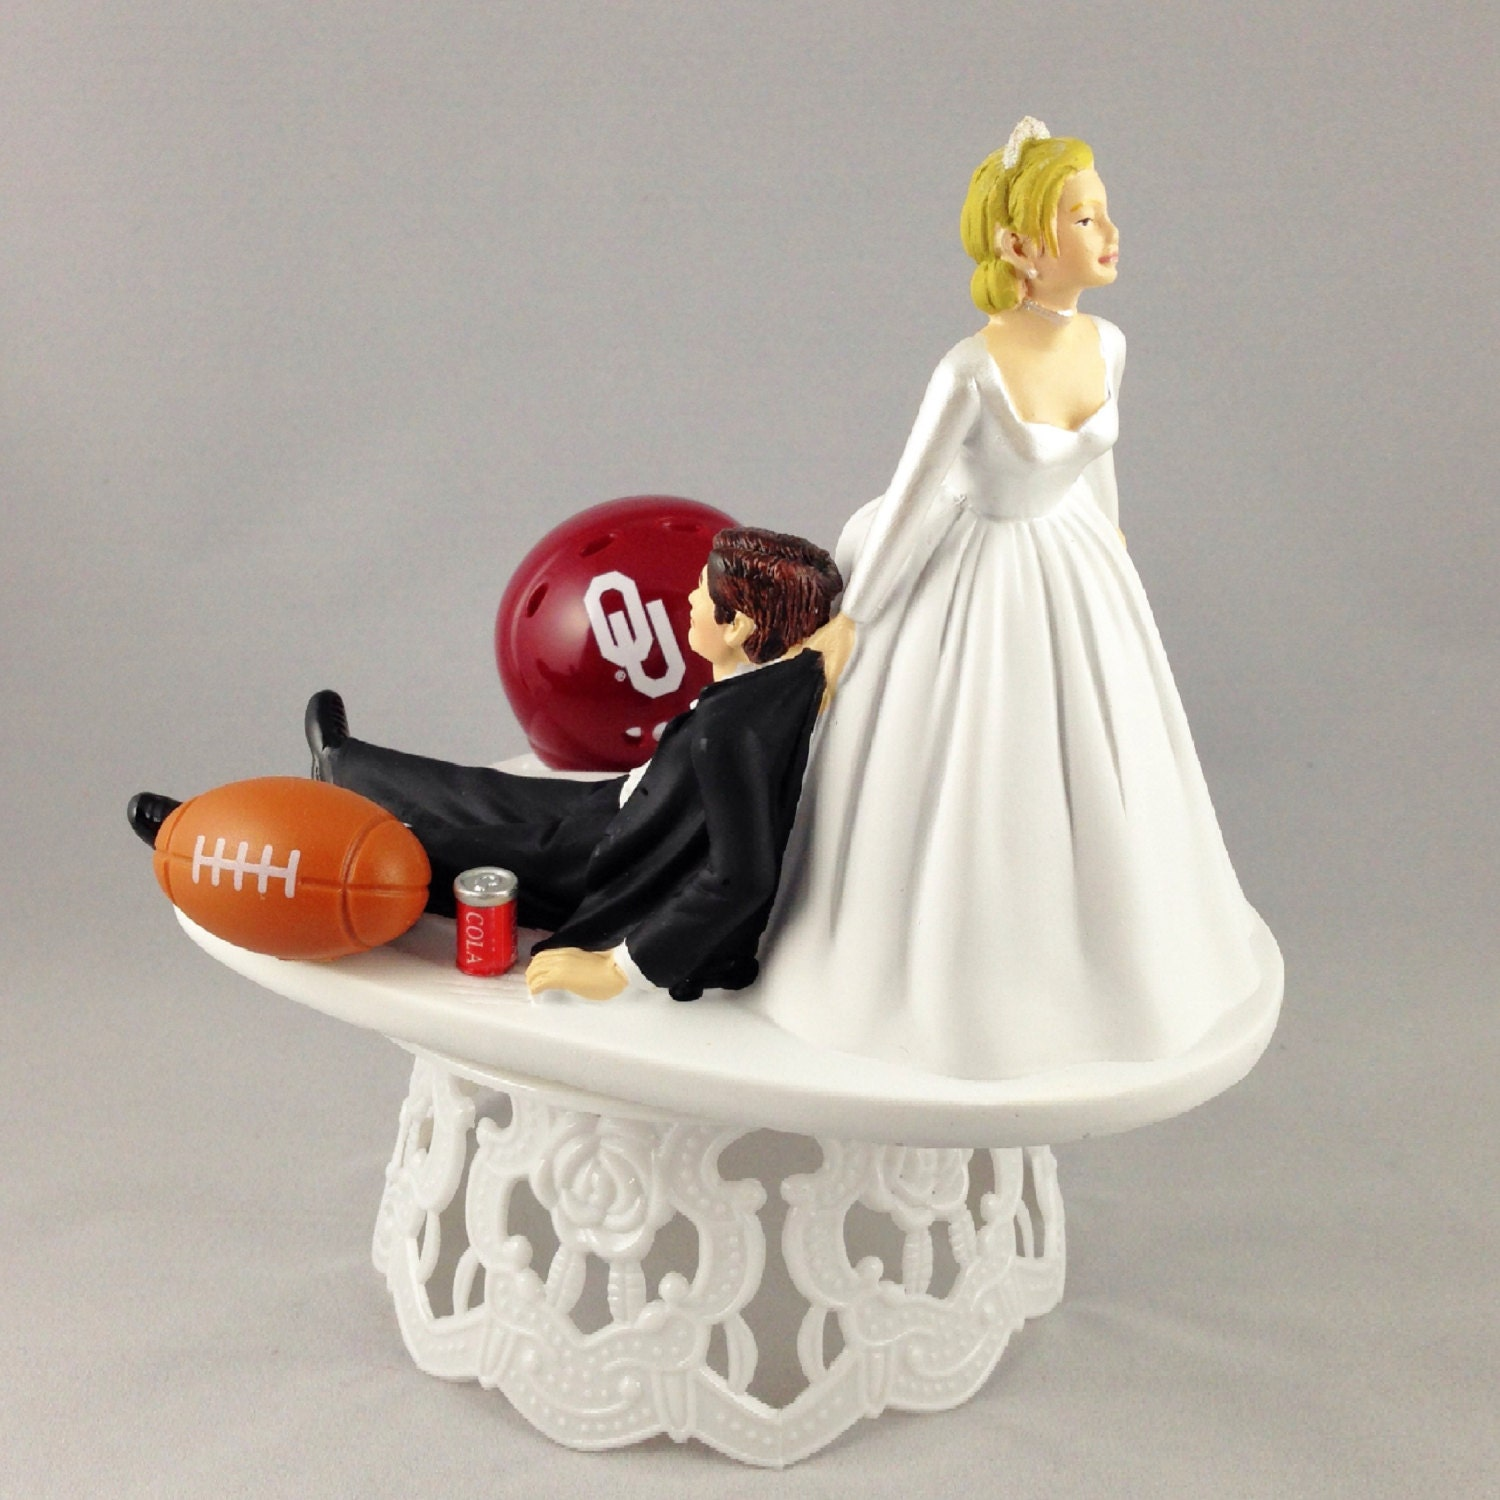 Funny Wedding Cake Topper Oklahoma Sooners by